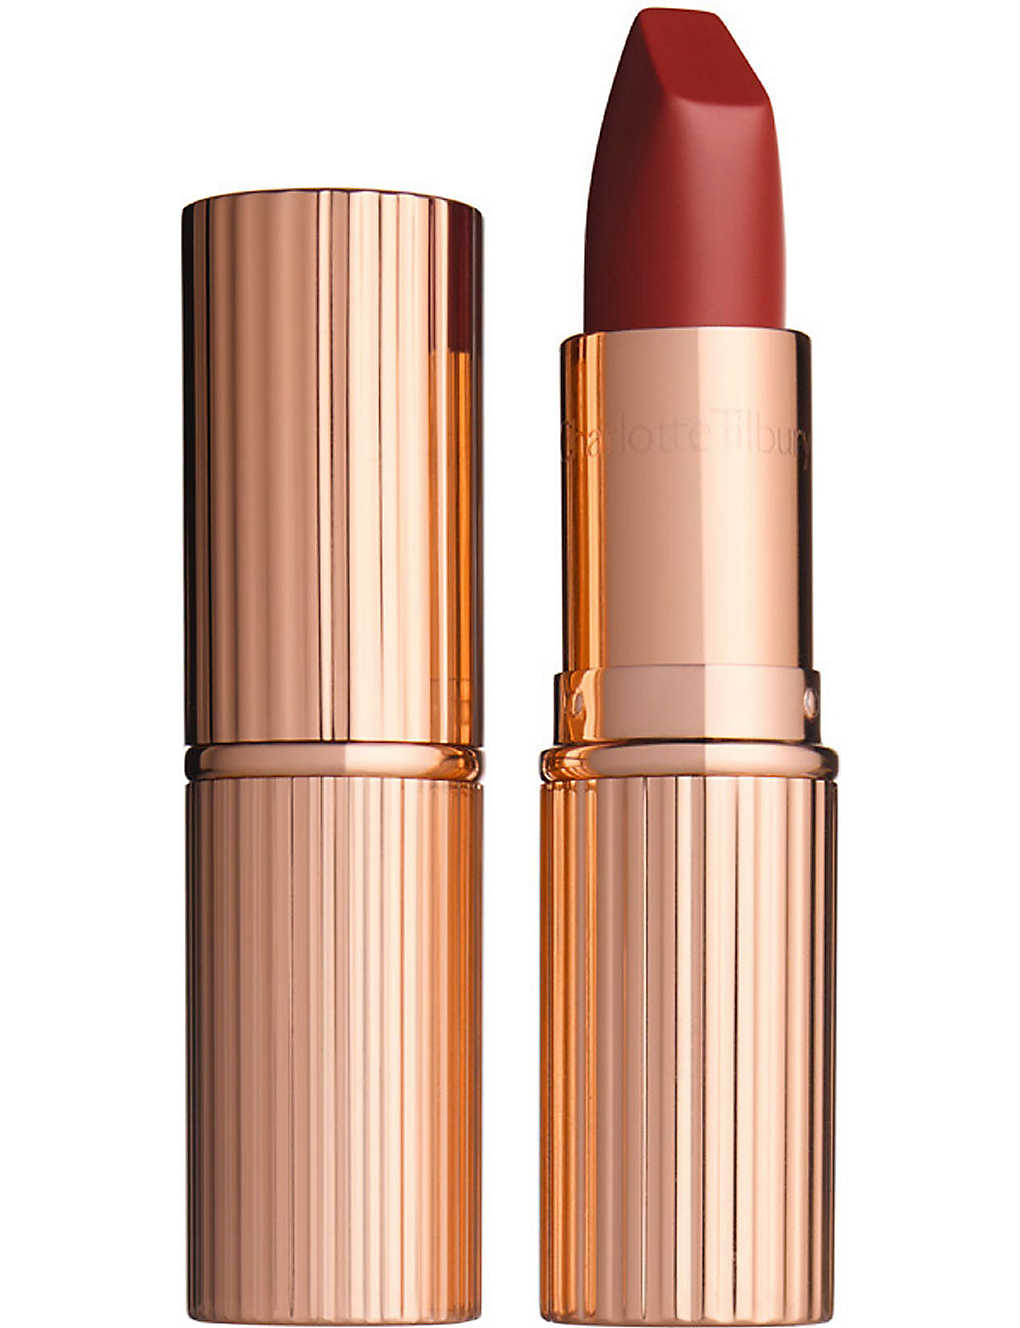 Walk Of Shame Matte Revolution Lipstick - Walk of shame